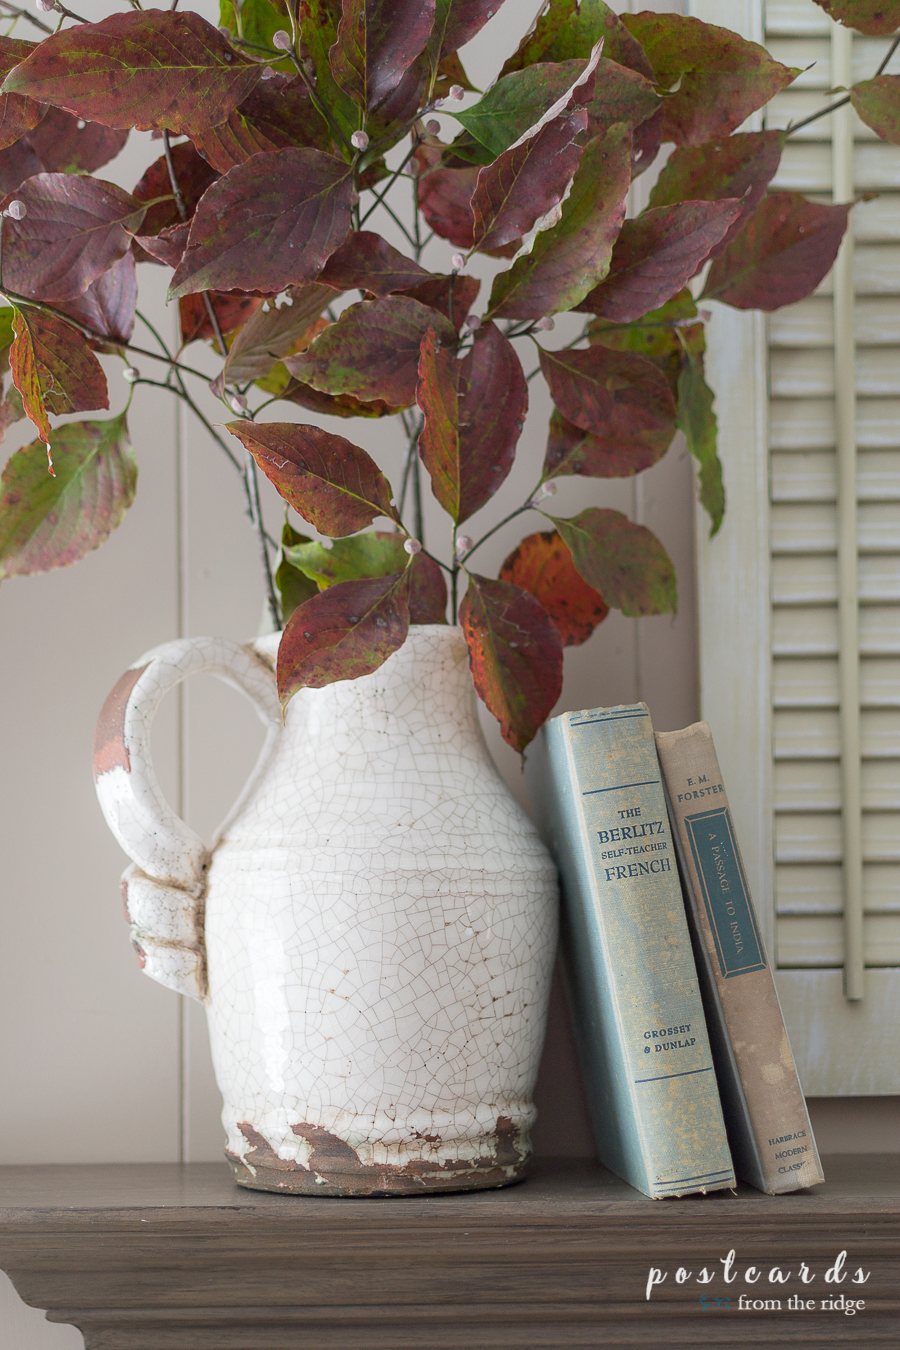 fall dogwood branches in white pitcher with old books on mantel